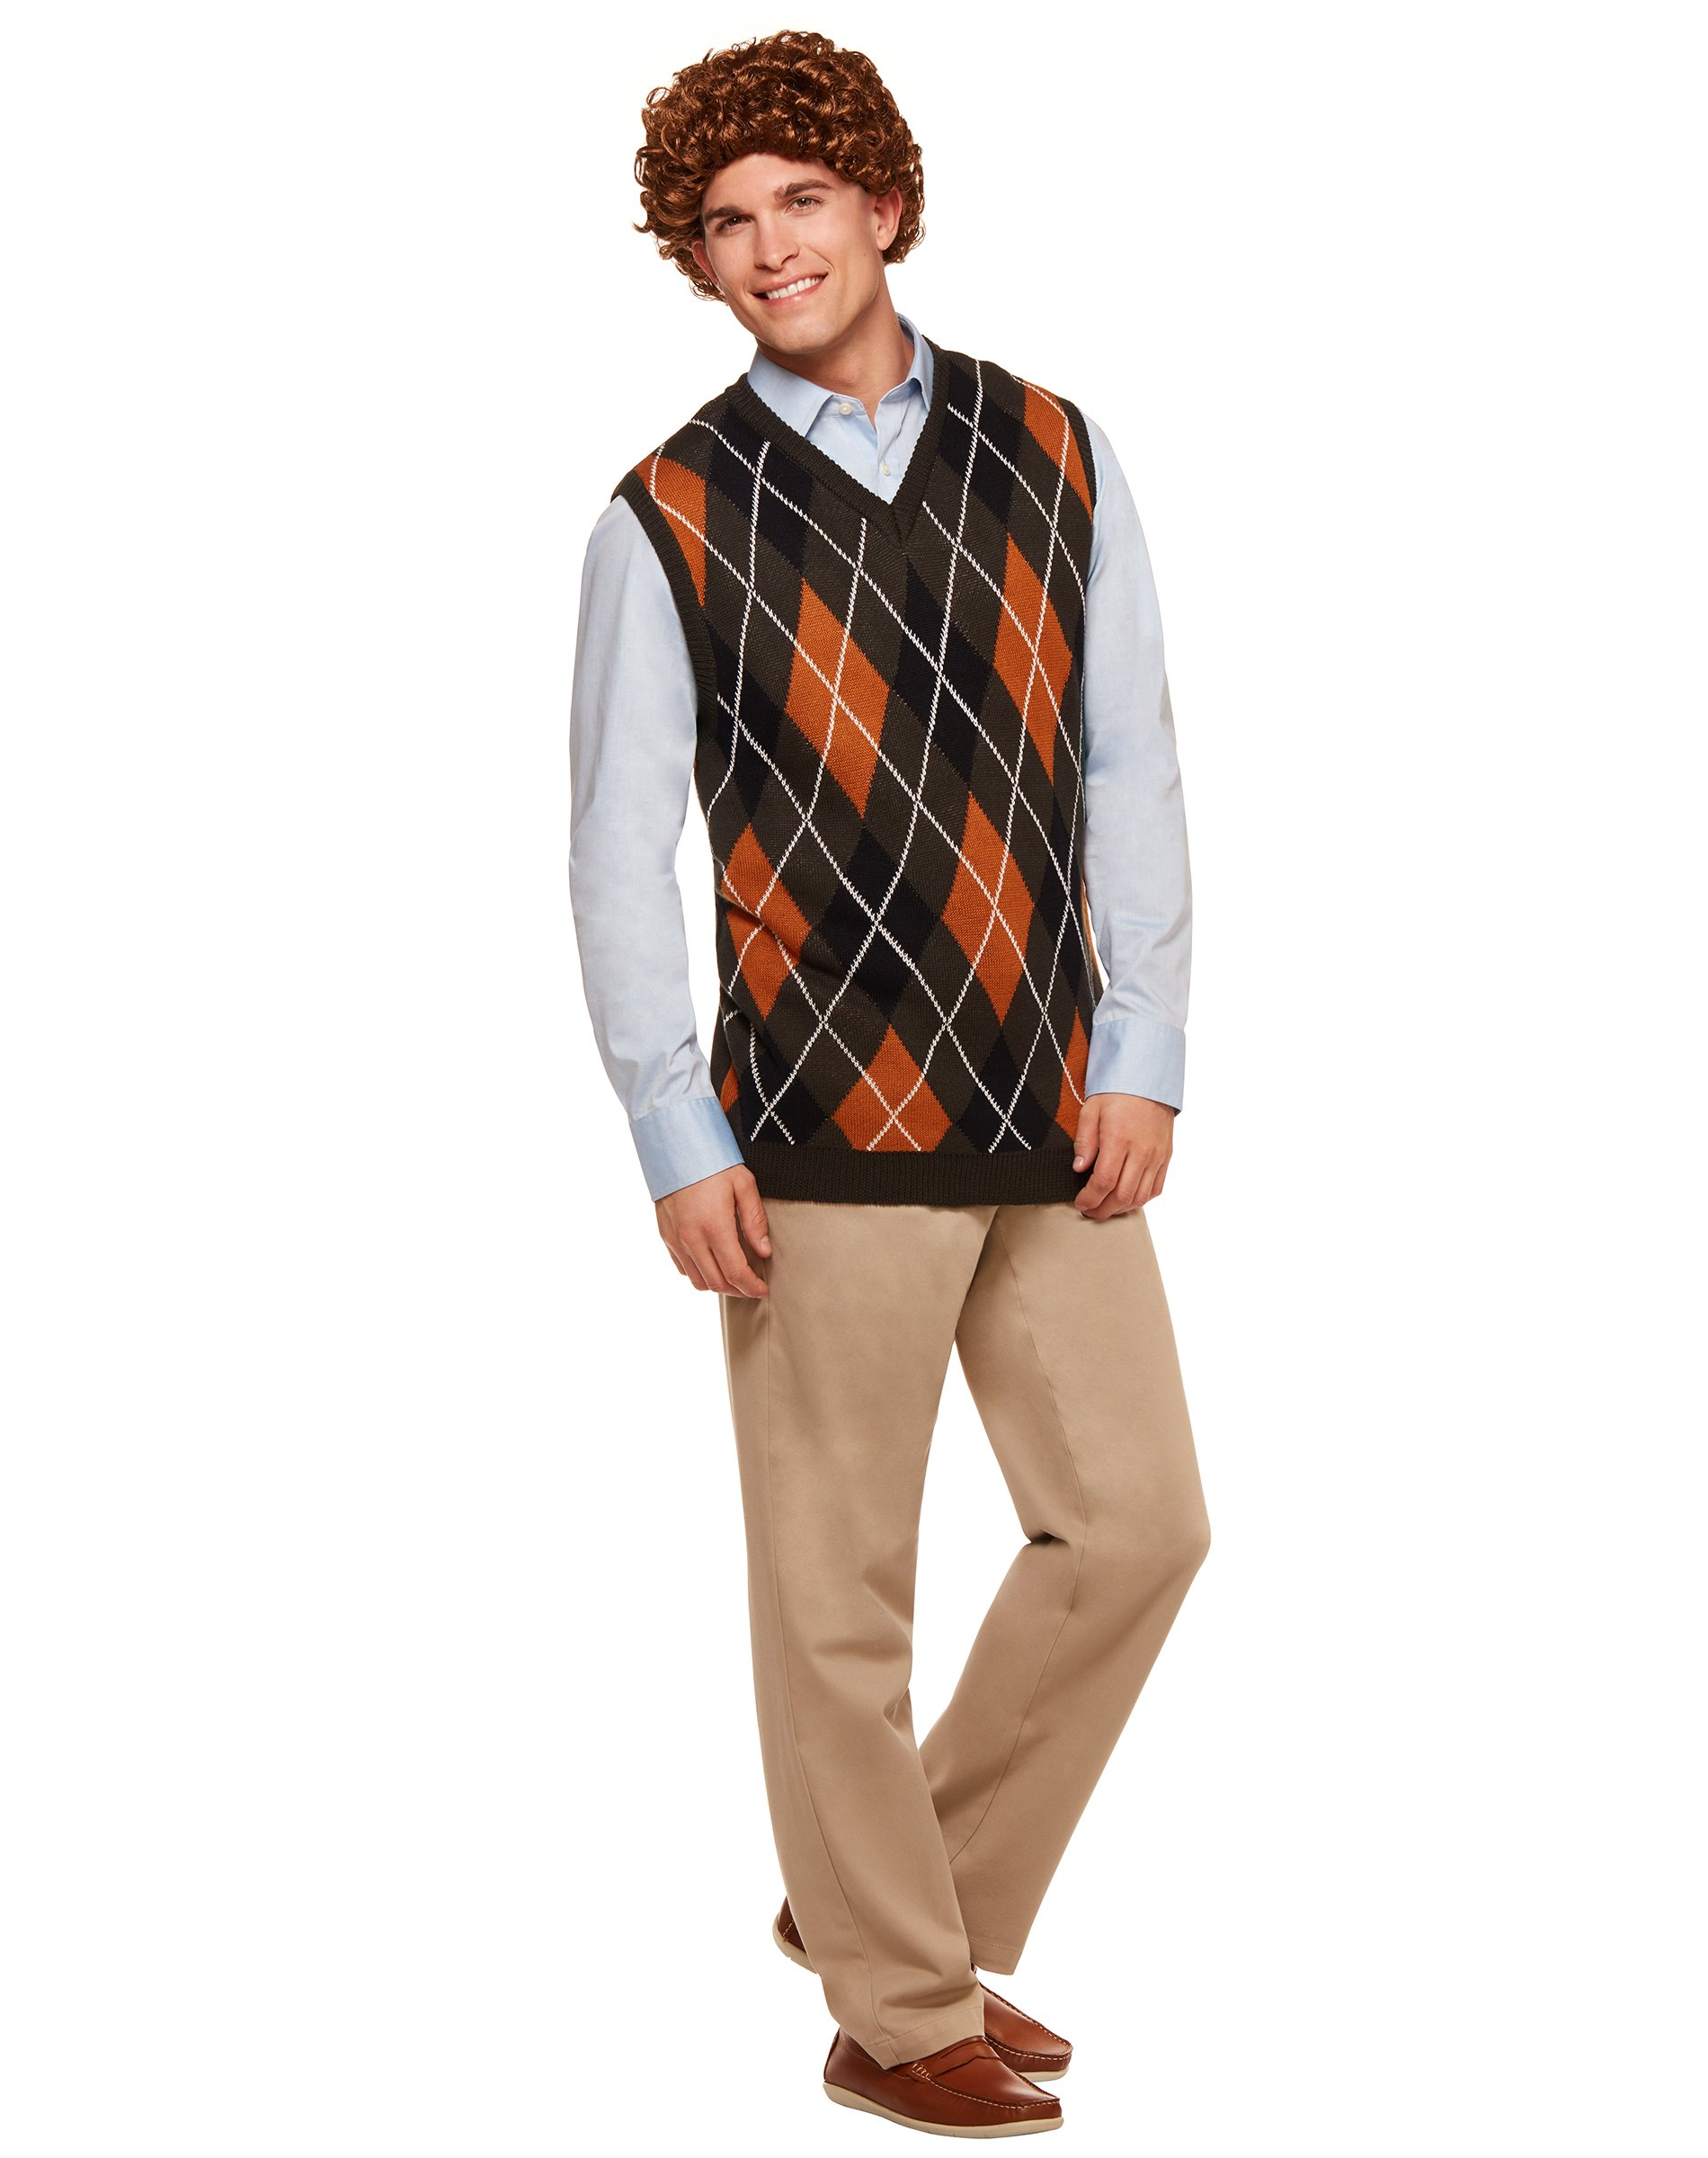 Spirit Halloween Brennan Sweater Vest and Wig - Step Brothers